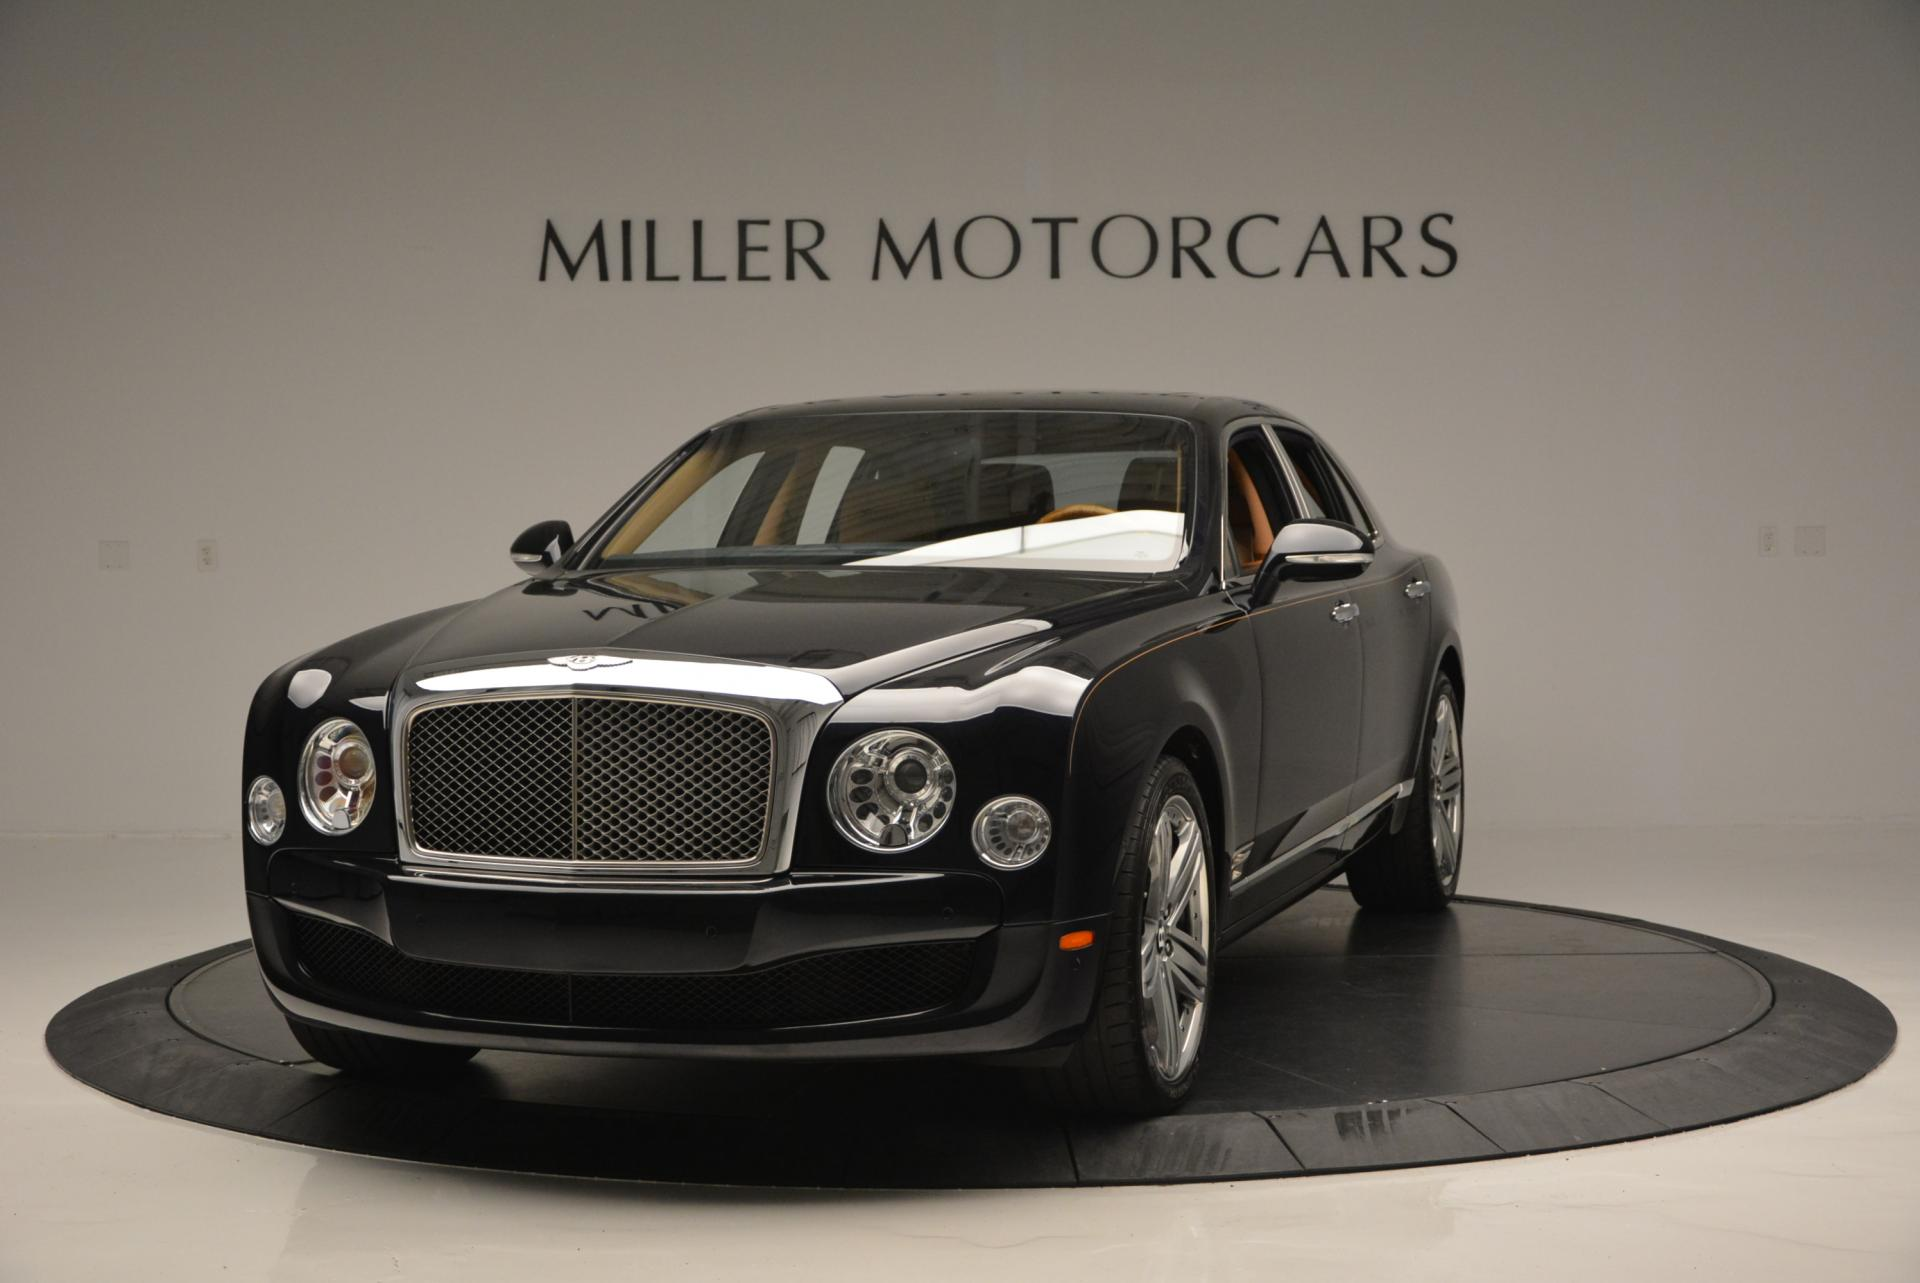 Used 2013 Bentley Mulsanne Le Mans Edition- Number 1 of 48 for sale Sold at Alfa Romeo of Westport in Westport CT 06880 1